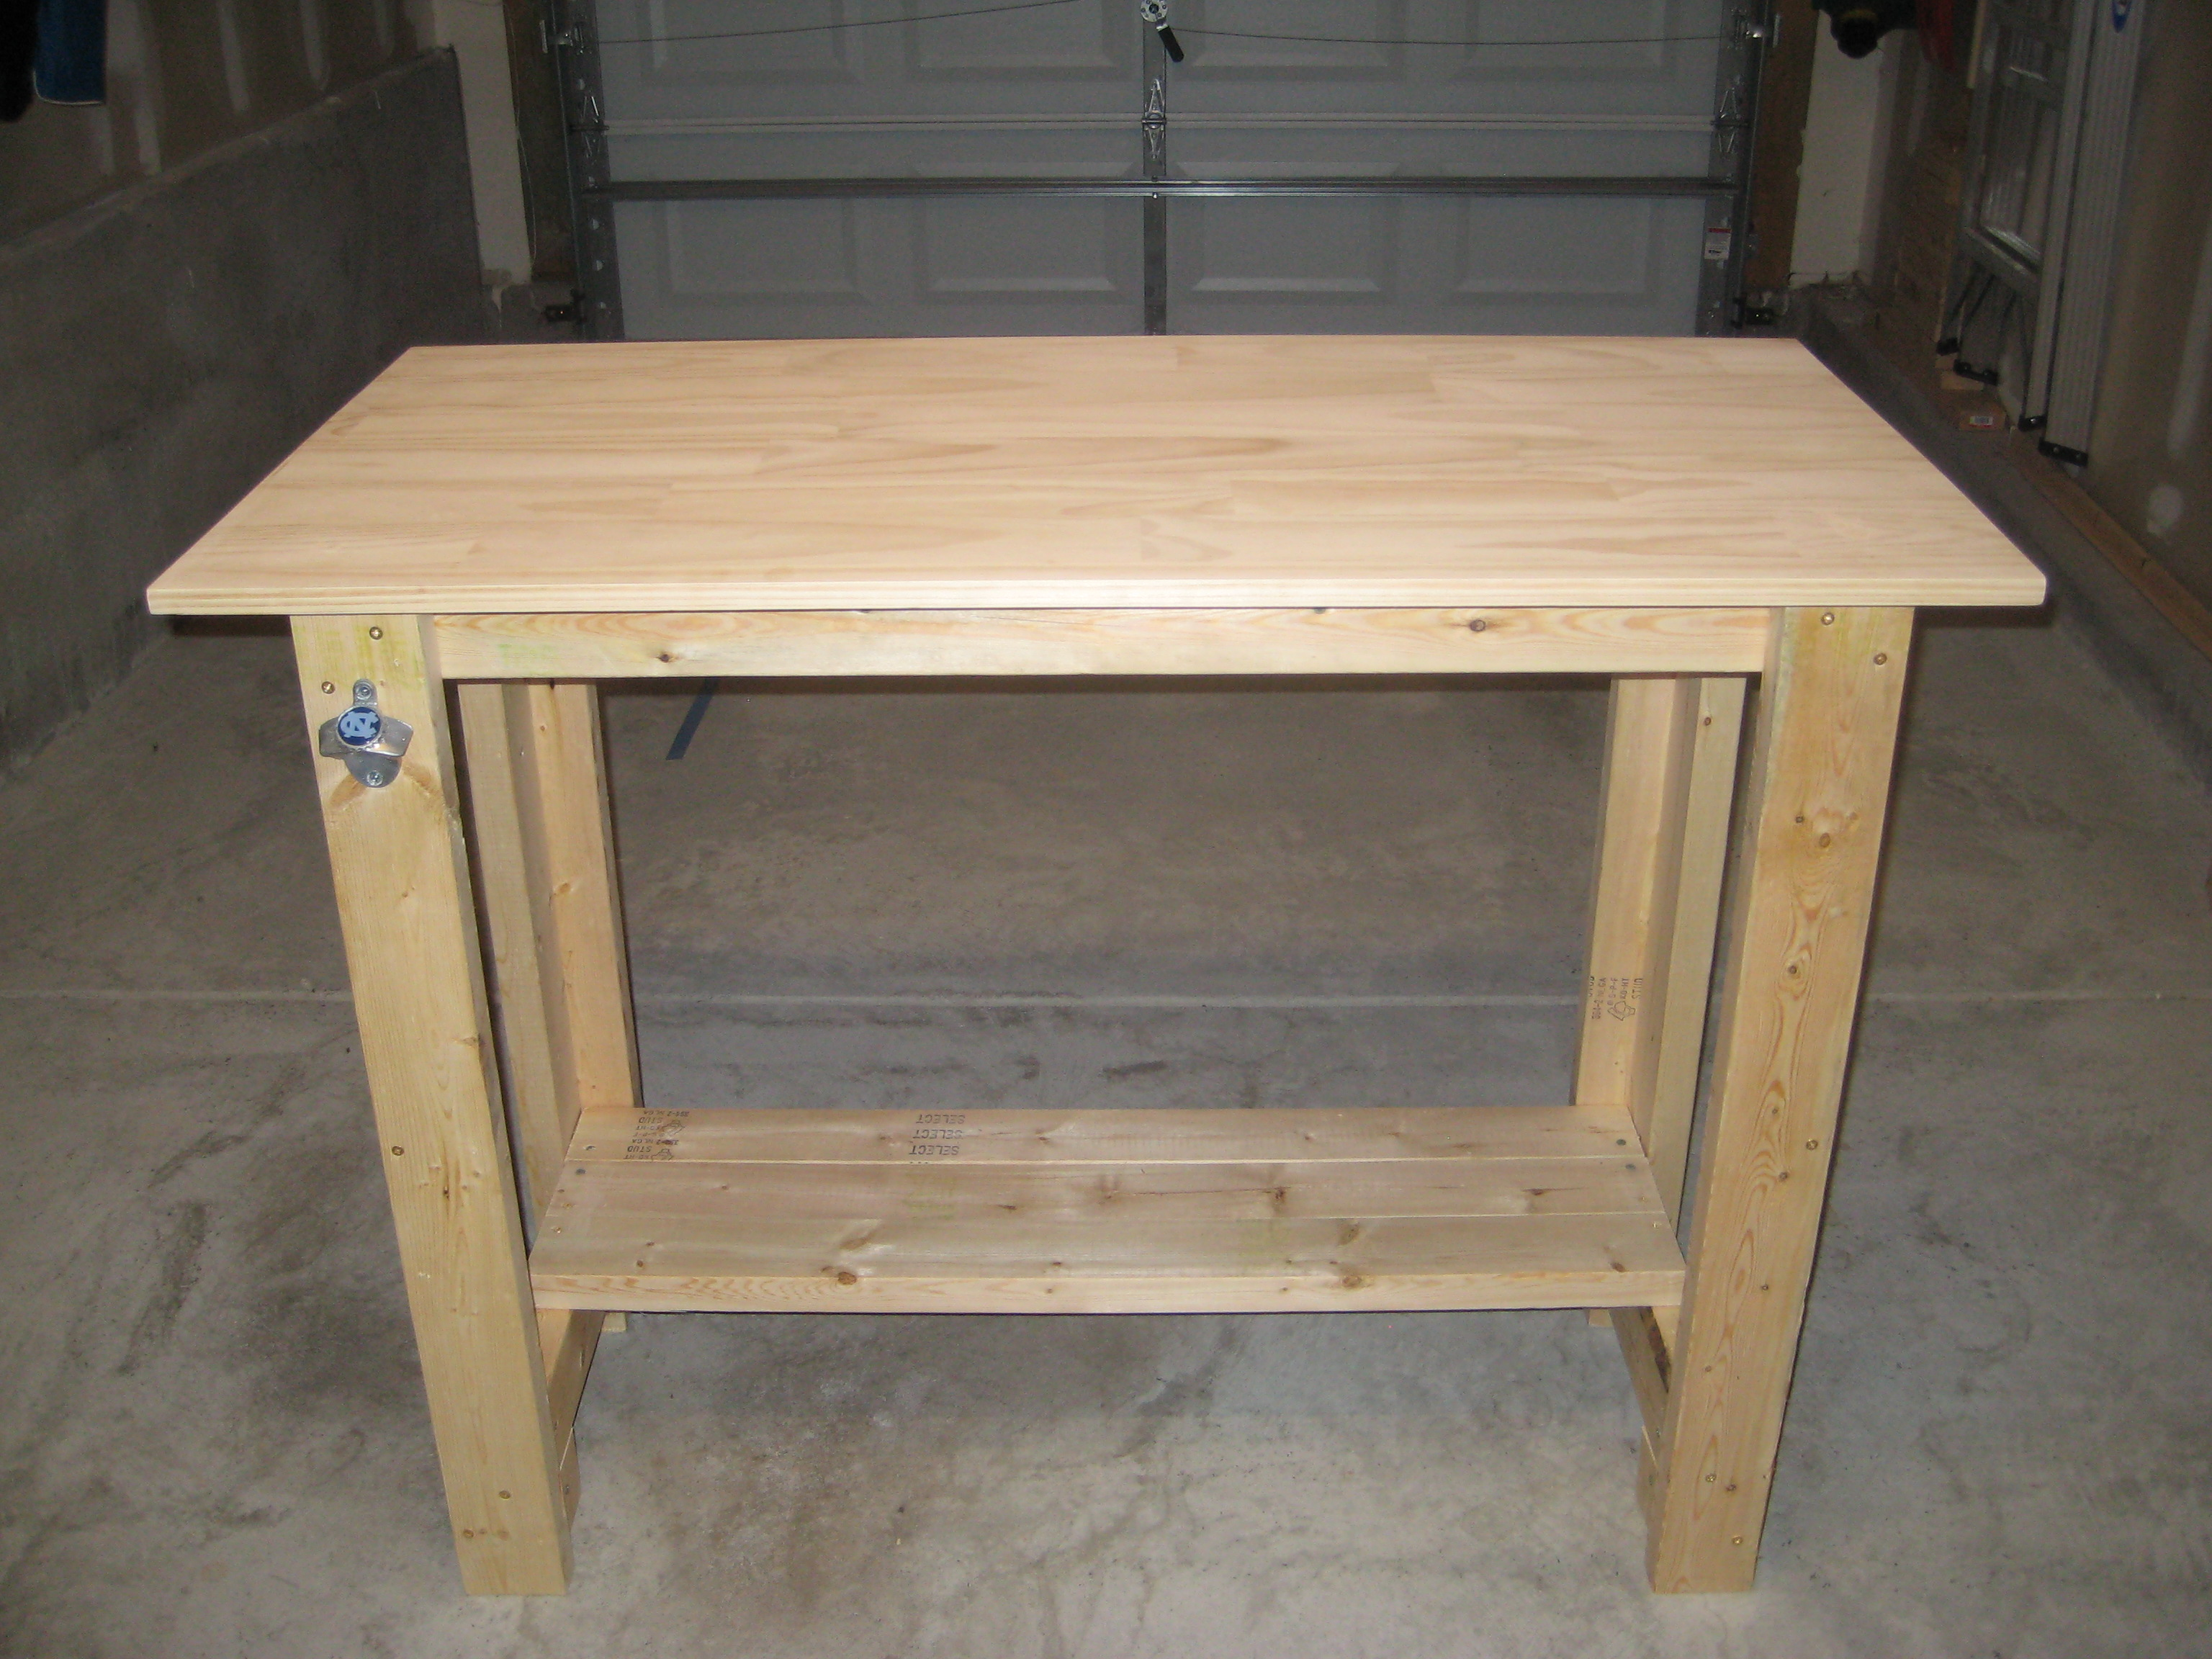 Ana White Sturdy Work Bench First Project Completed